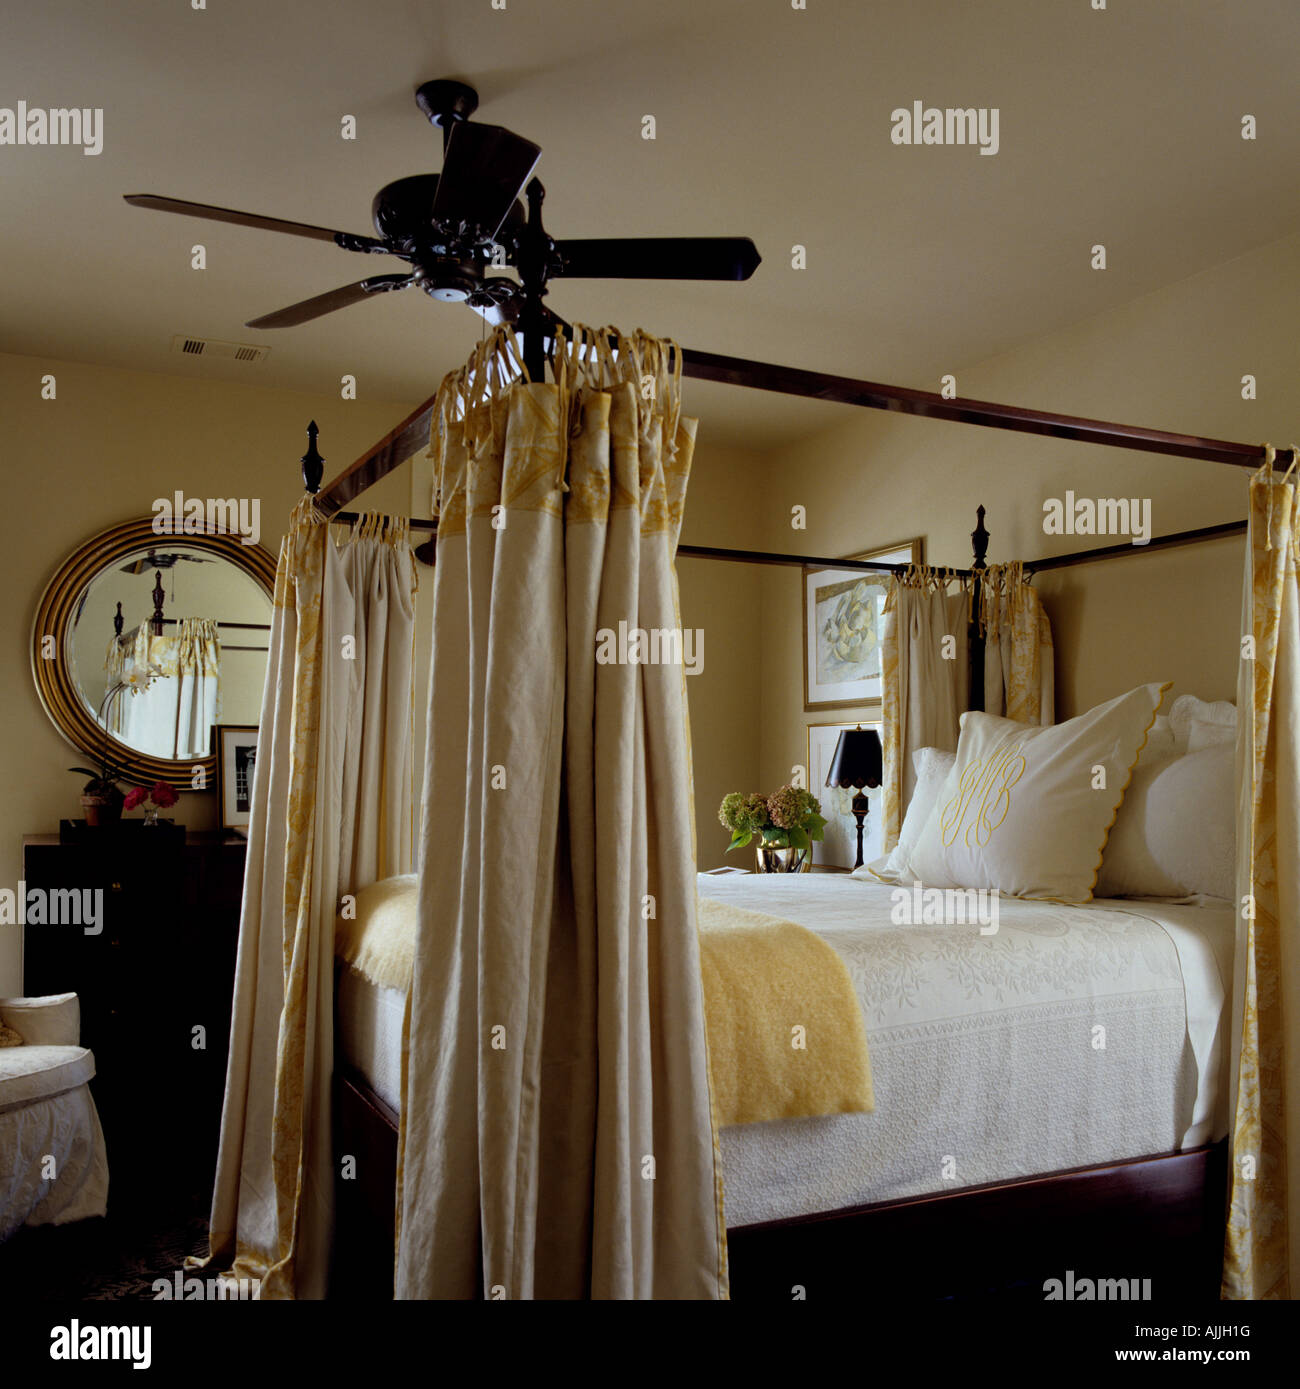 Fourposter Bed With Curtain Rail In Bedroom With Circular Mirror And Ceiling  Fan